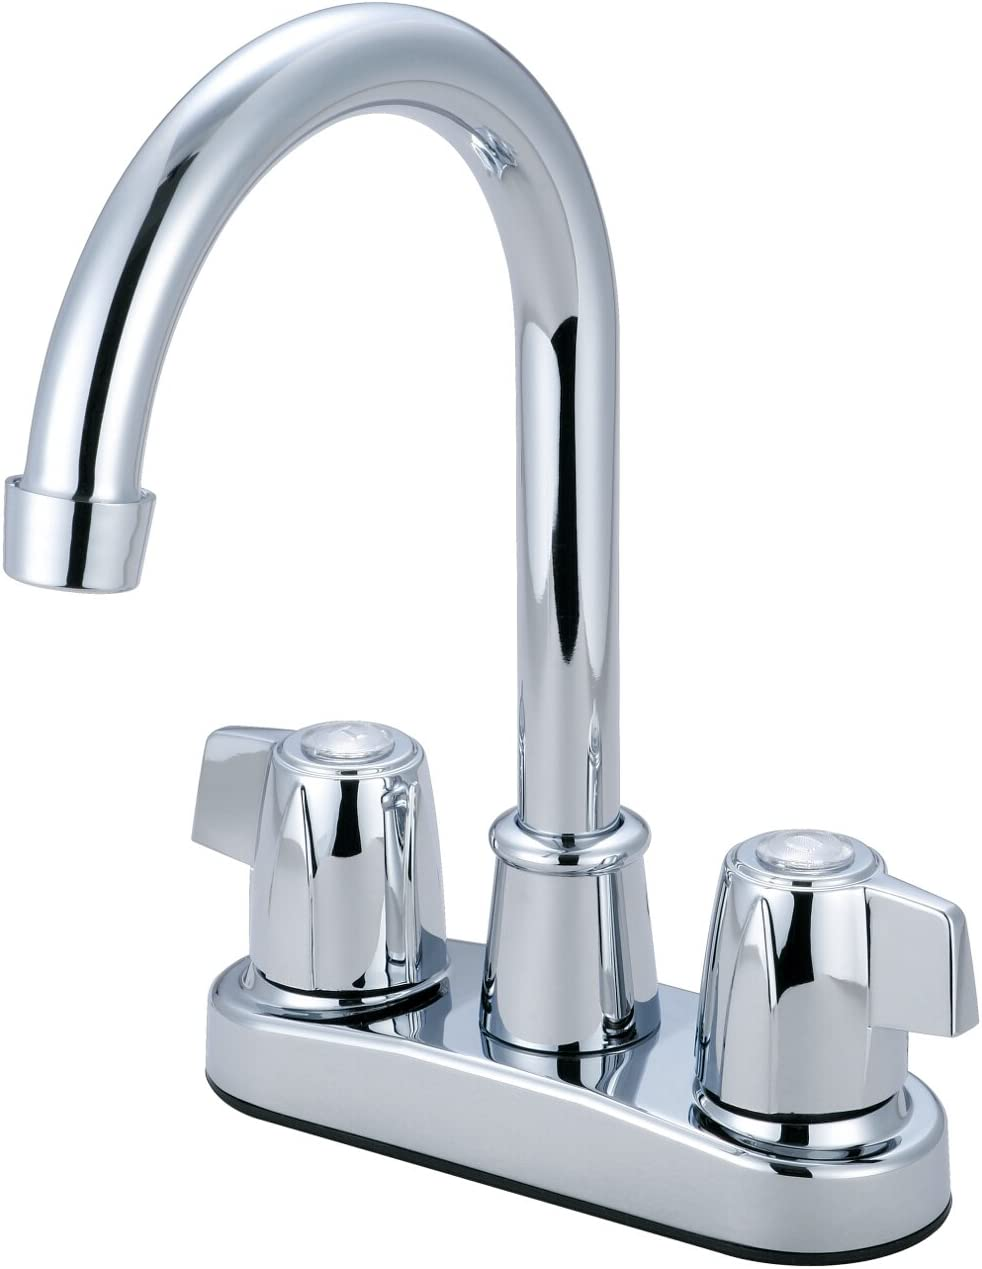 Olympia Faucets B-8171 Two Handle Bar Faucet, Chrome Finish